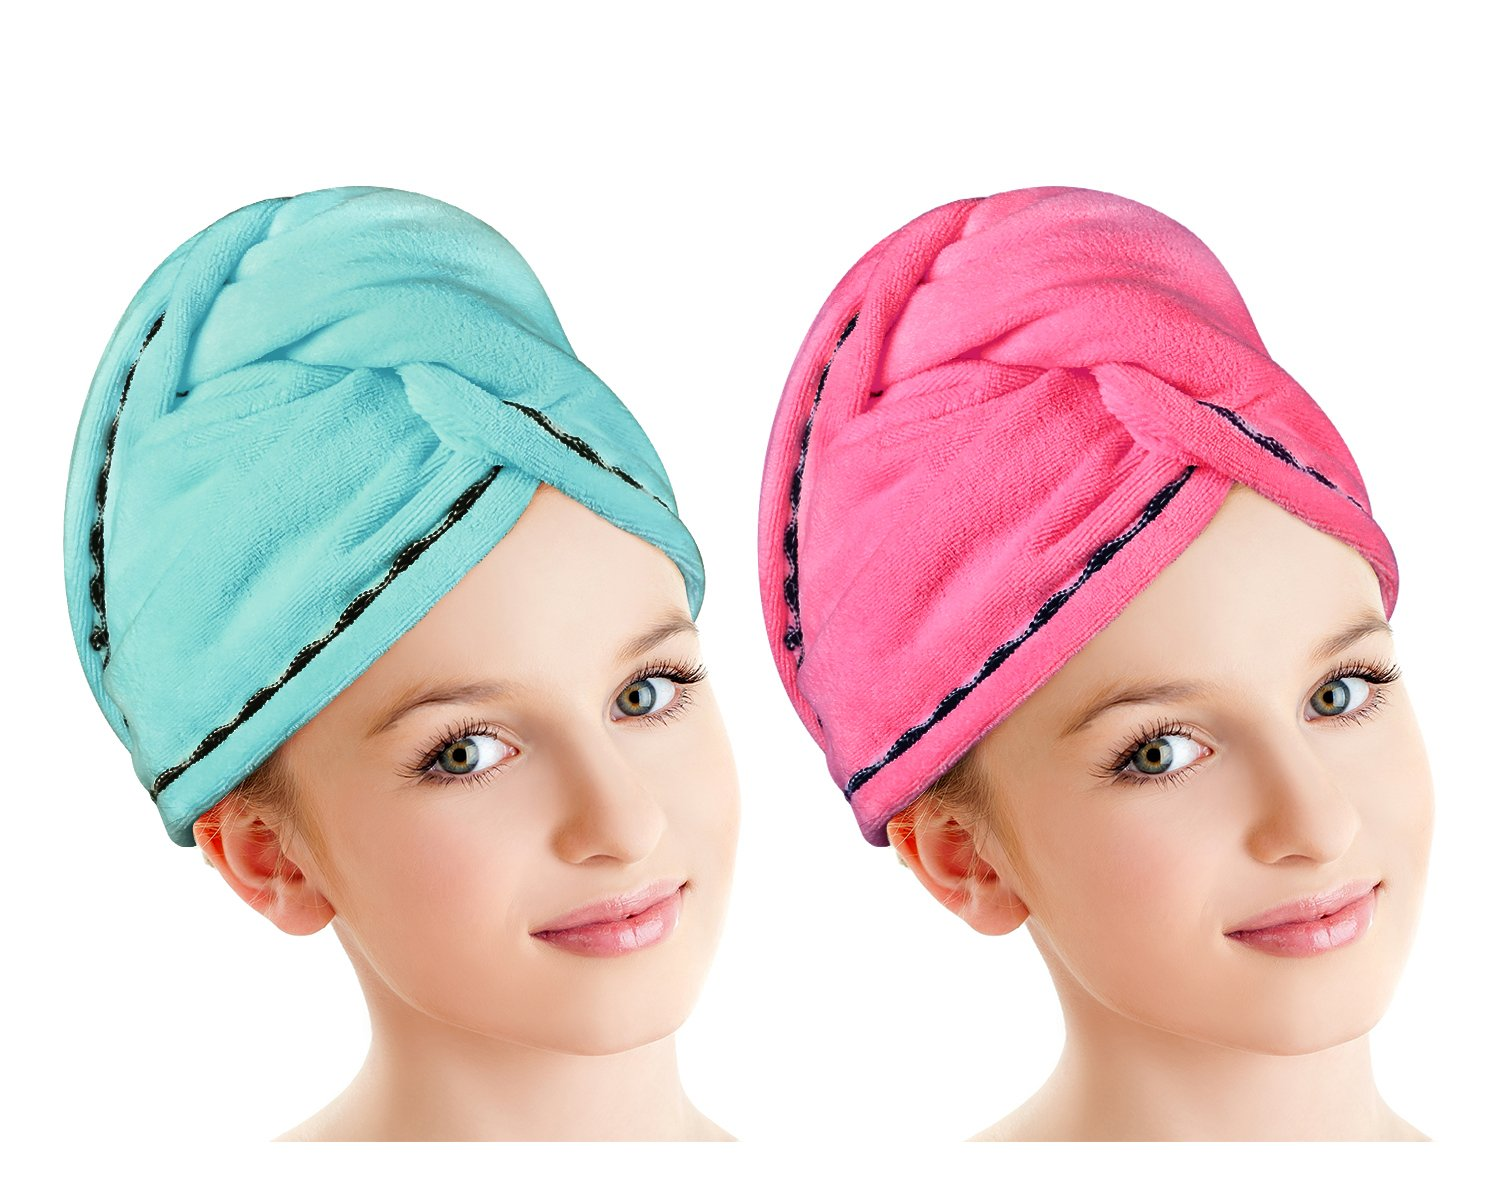 Luxspire 2 Pack Microfiber Hair Drying Towels, Fast Drying Hair Cap, Long Hair Wrap Turban, Bath Shower Head Towel with Buttons, Super Water-absorbent, Blue & Rose Red